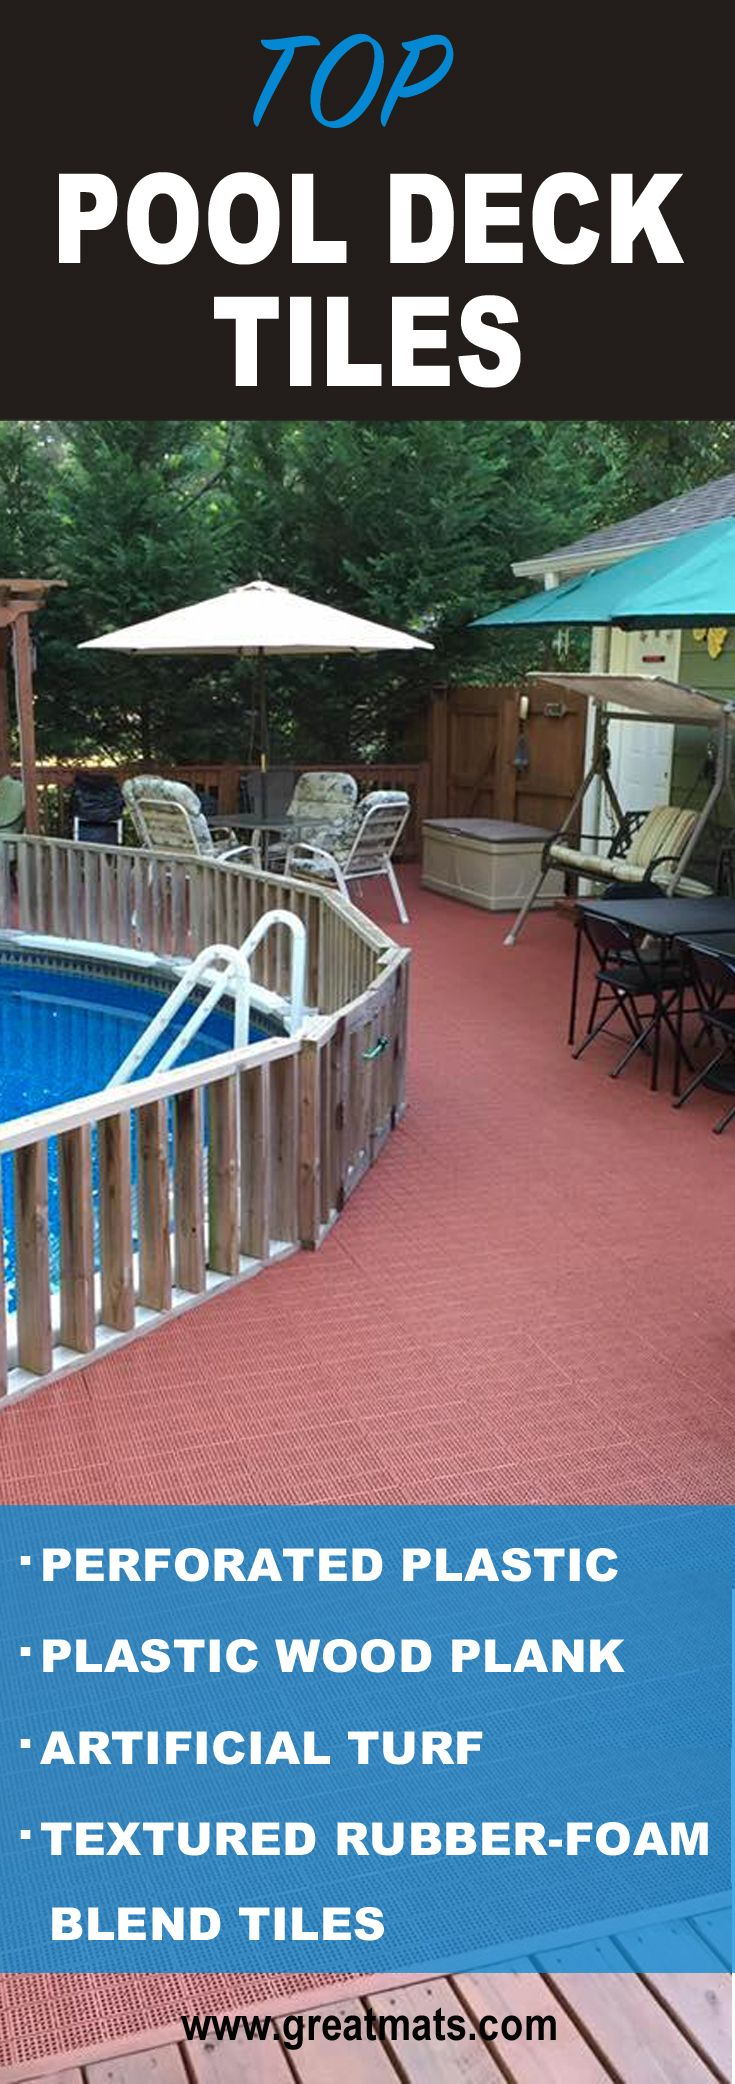 10 best pool deck tiles and mats images on pinterest